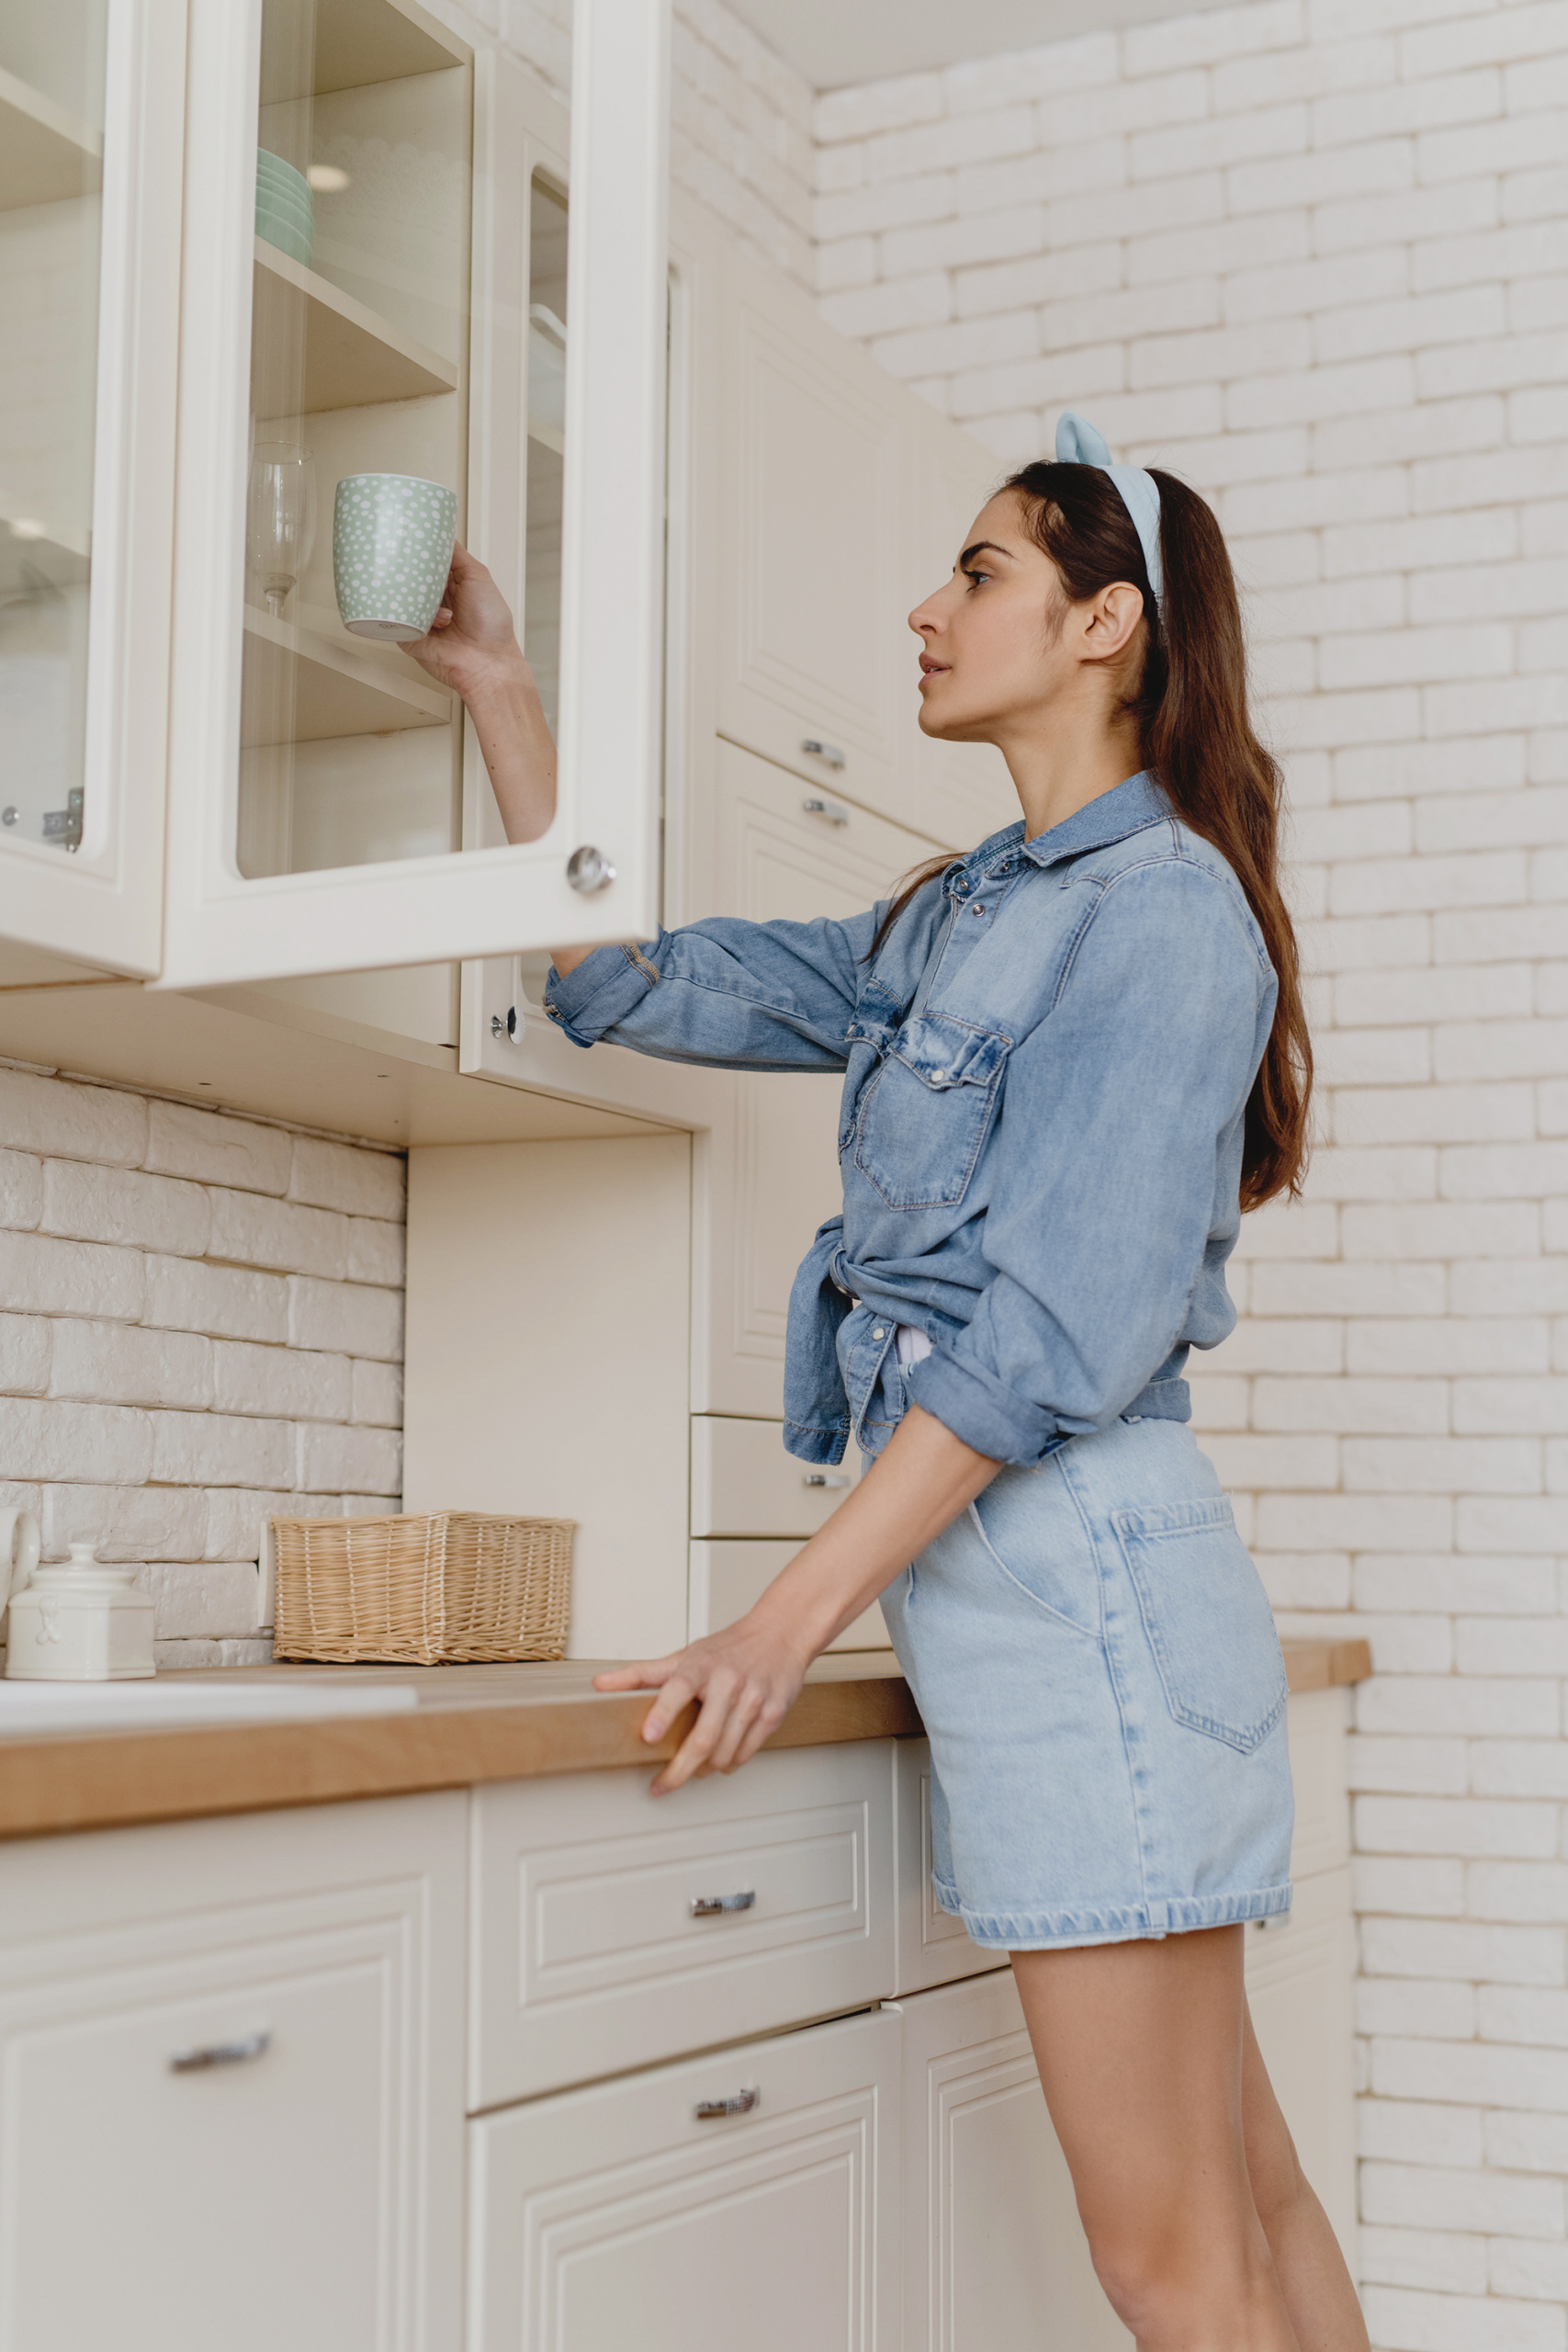 common menopause questions, Long-haired brunette in denim putting mug away in white kitchen